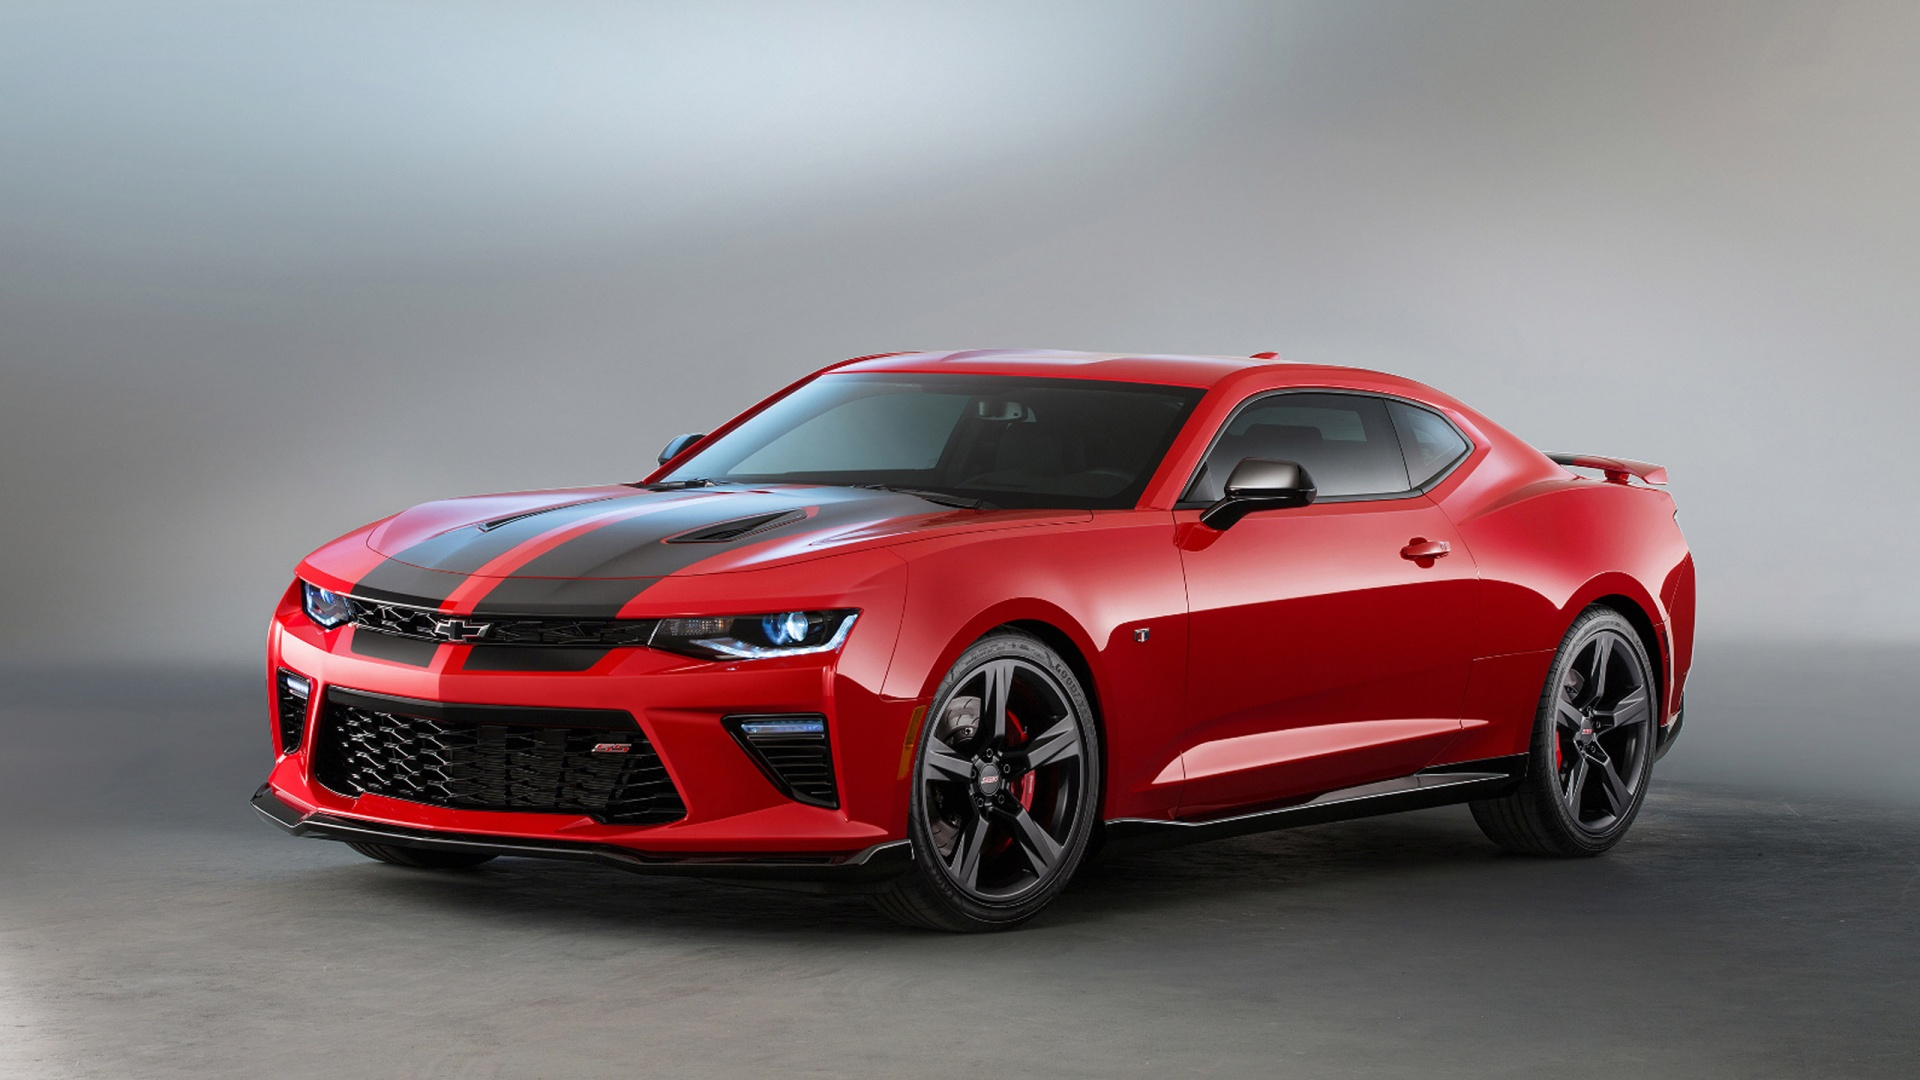 2016 Chevrolet Camaro SS Black Accent Package Wallpaper 1920x1080